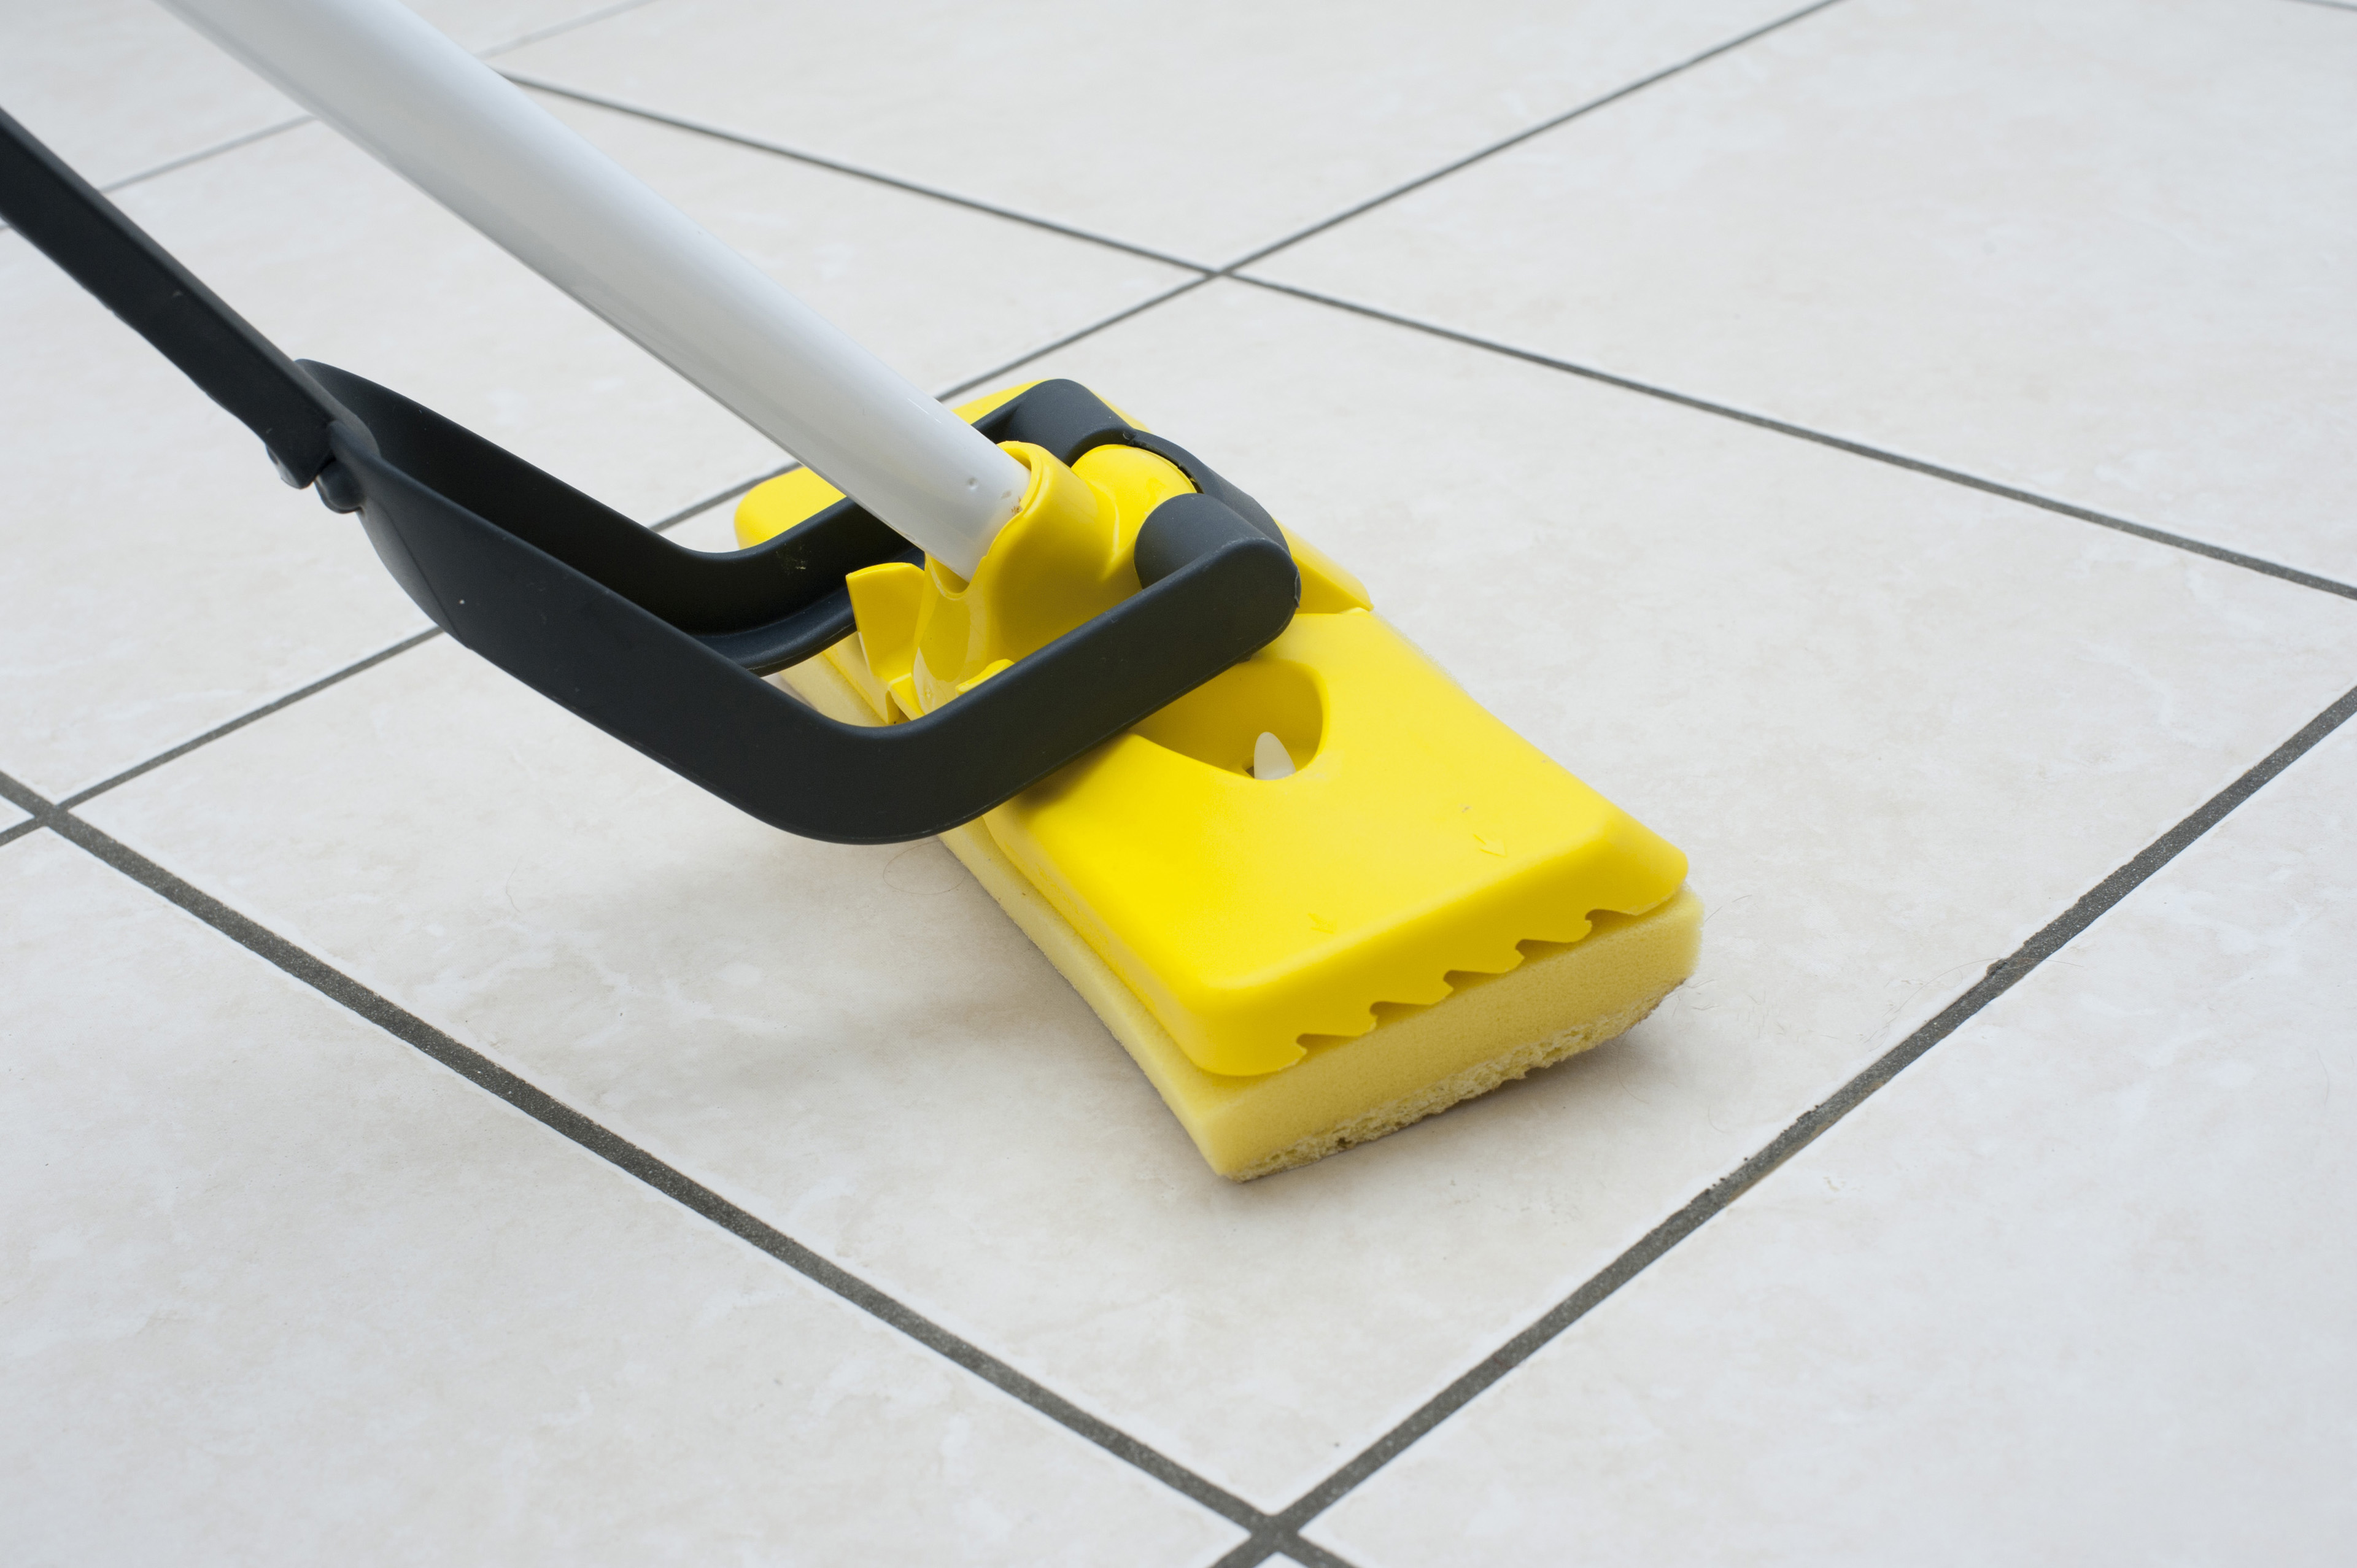 Mopping the white tiled kitchen or bathroom floor using a colorful yellow plastic squeegee in a household chores, cleanliness and hygiene concept